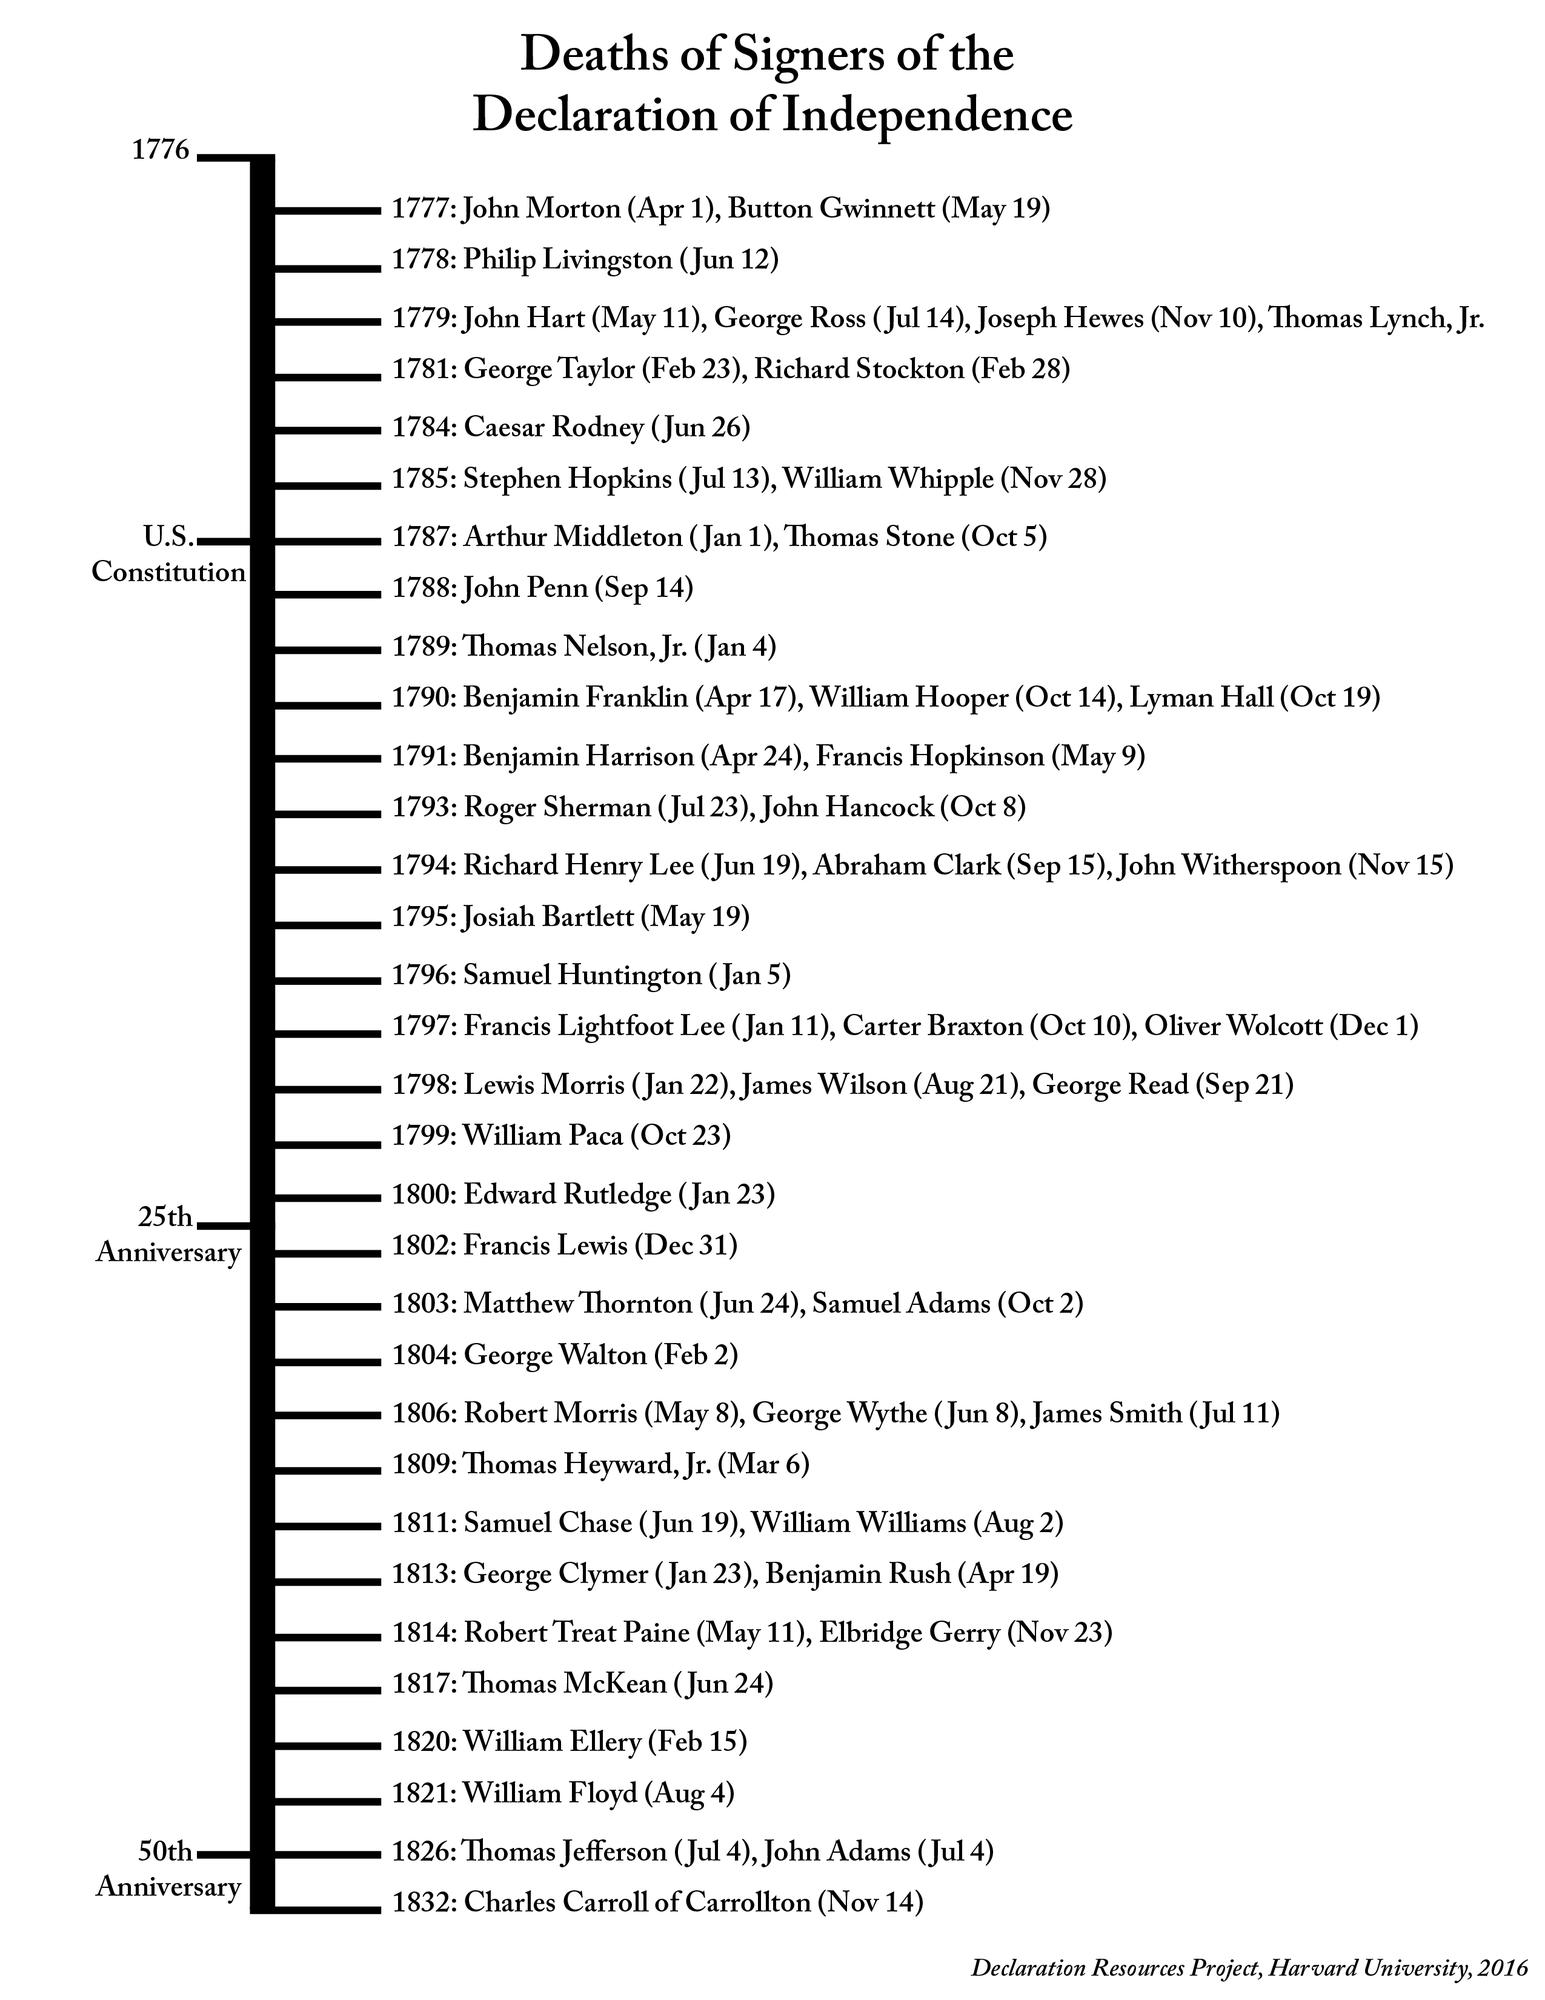 Printable Version of the Last Living Signers Timeline